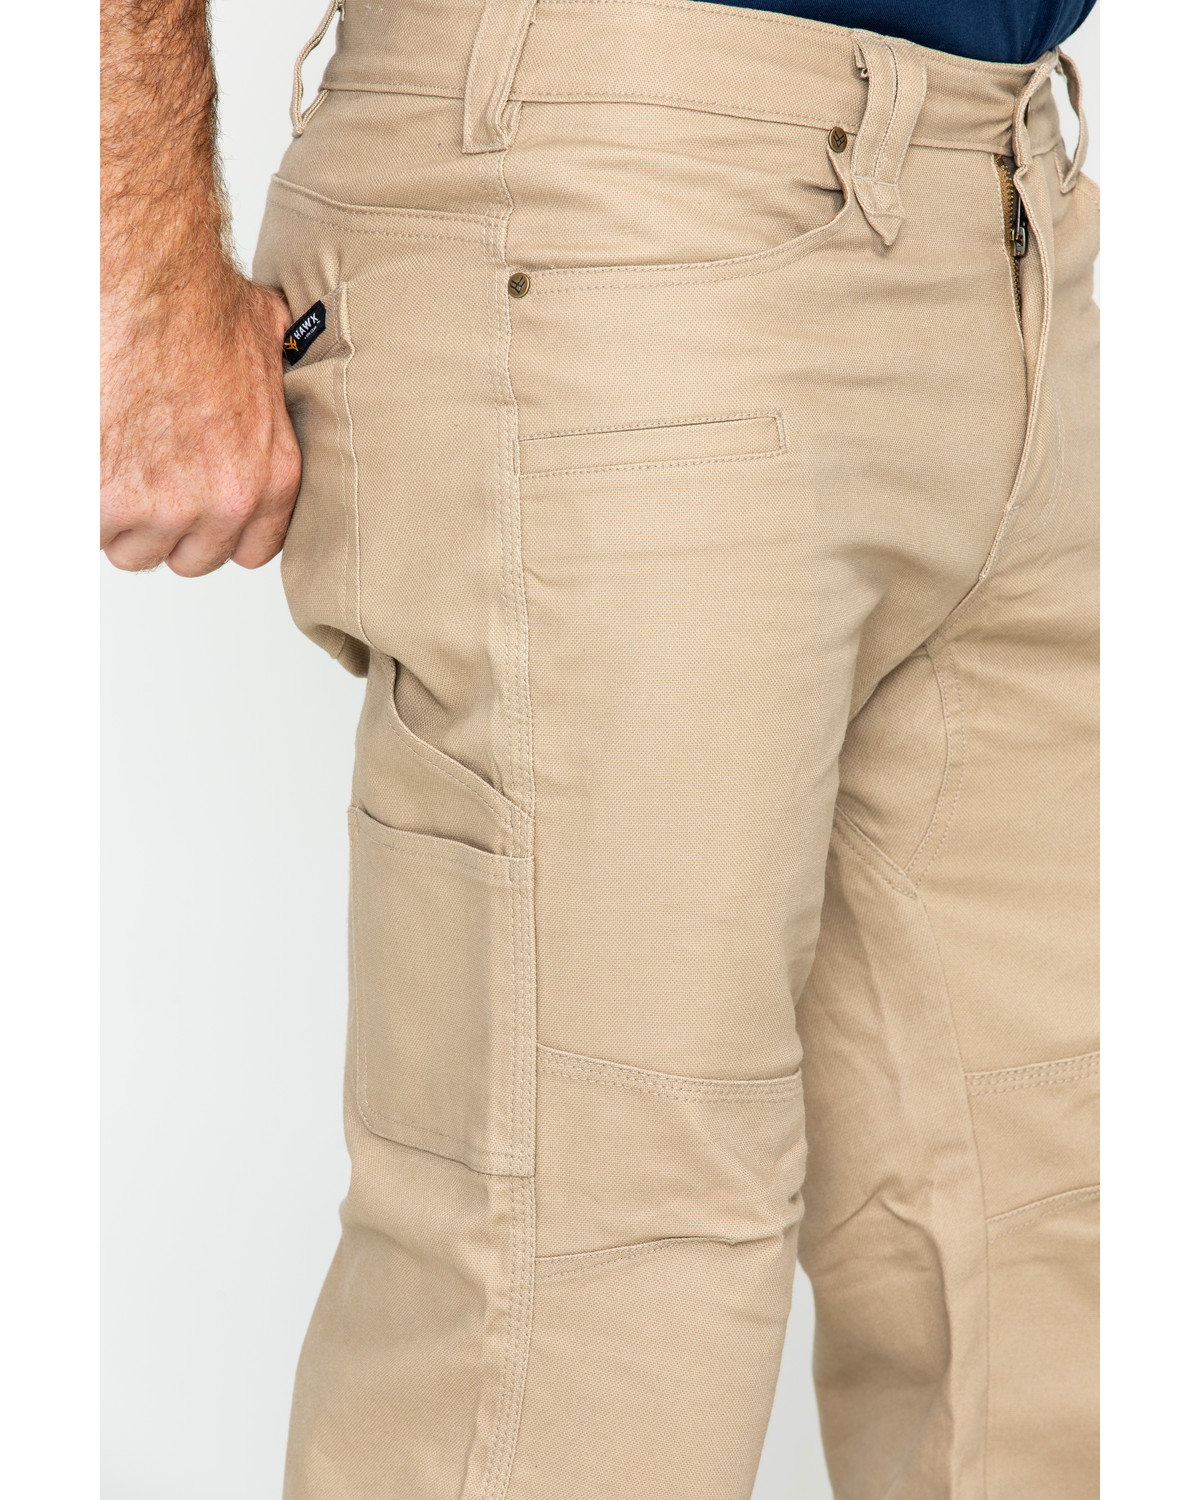 435a1350829 Hawx® Men s Stretch Canvas Utility Work Pants - Country Outfitter